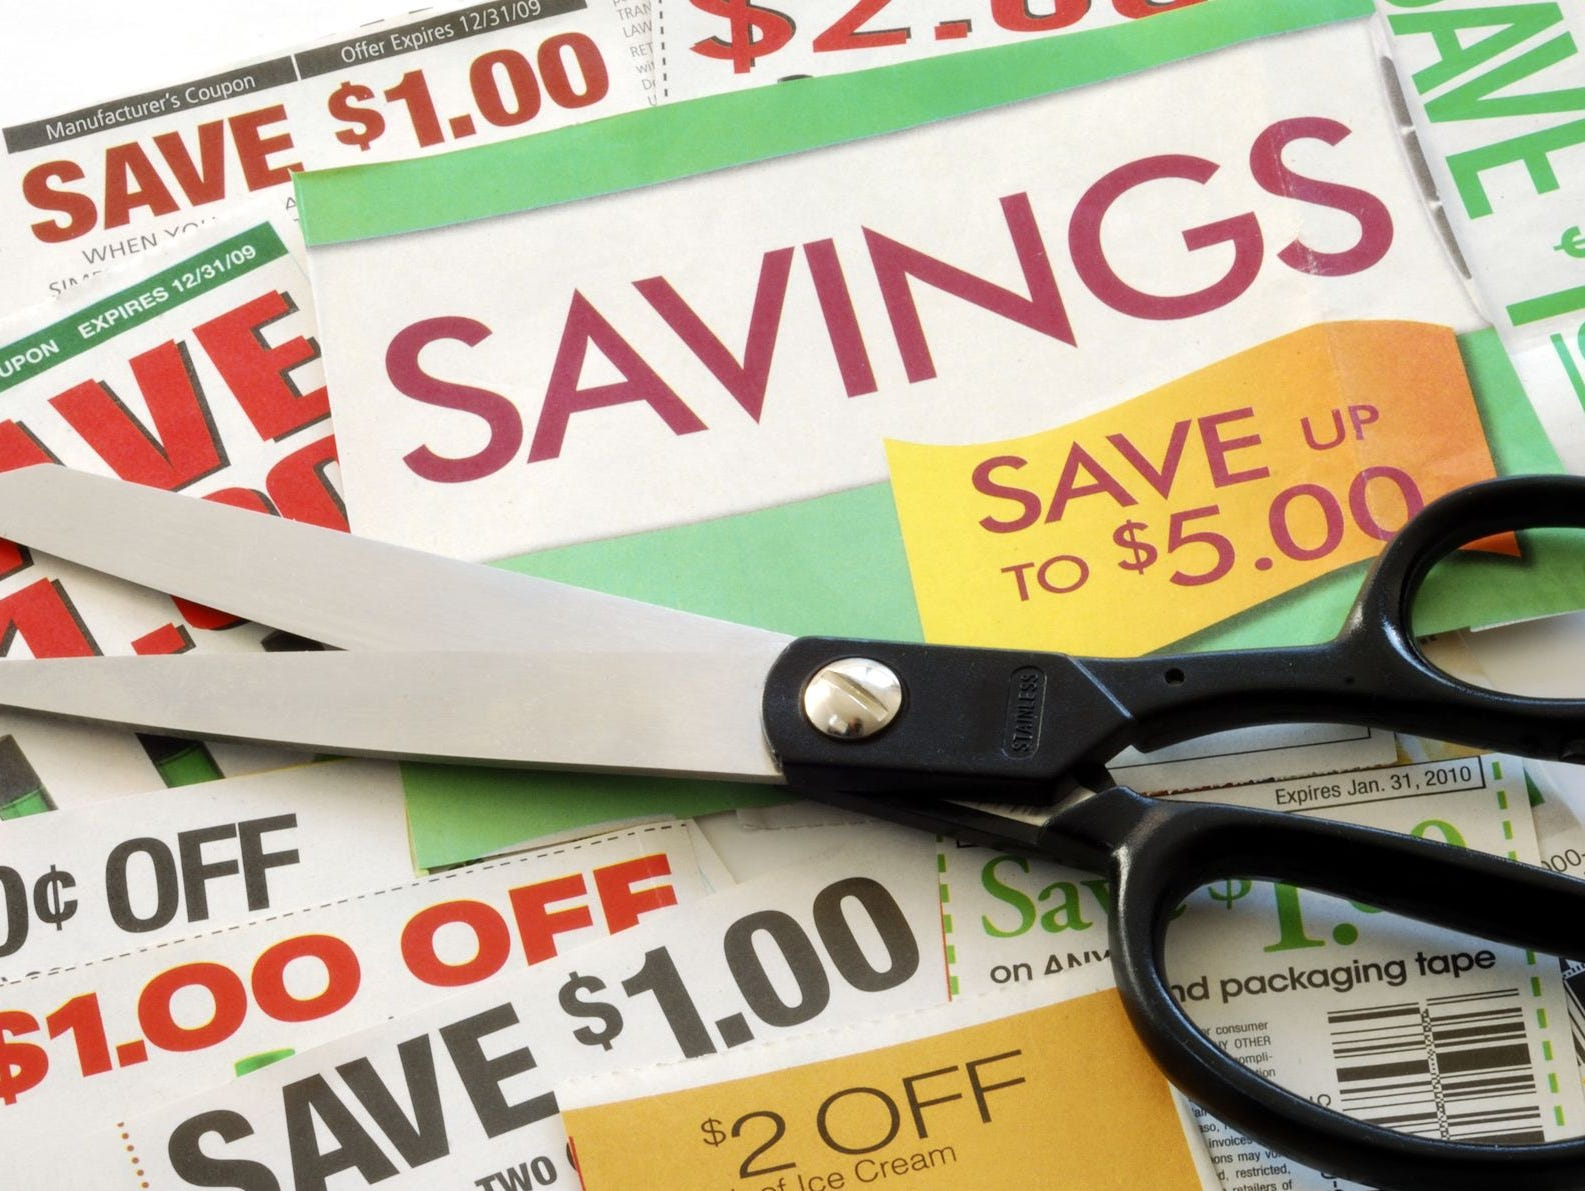 Start saving and slash your grocery bill in half with these manufacturers coupons! Log in to start saving!